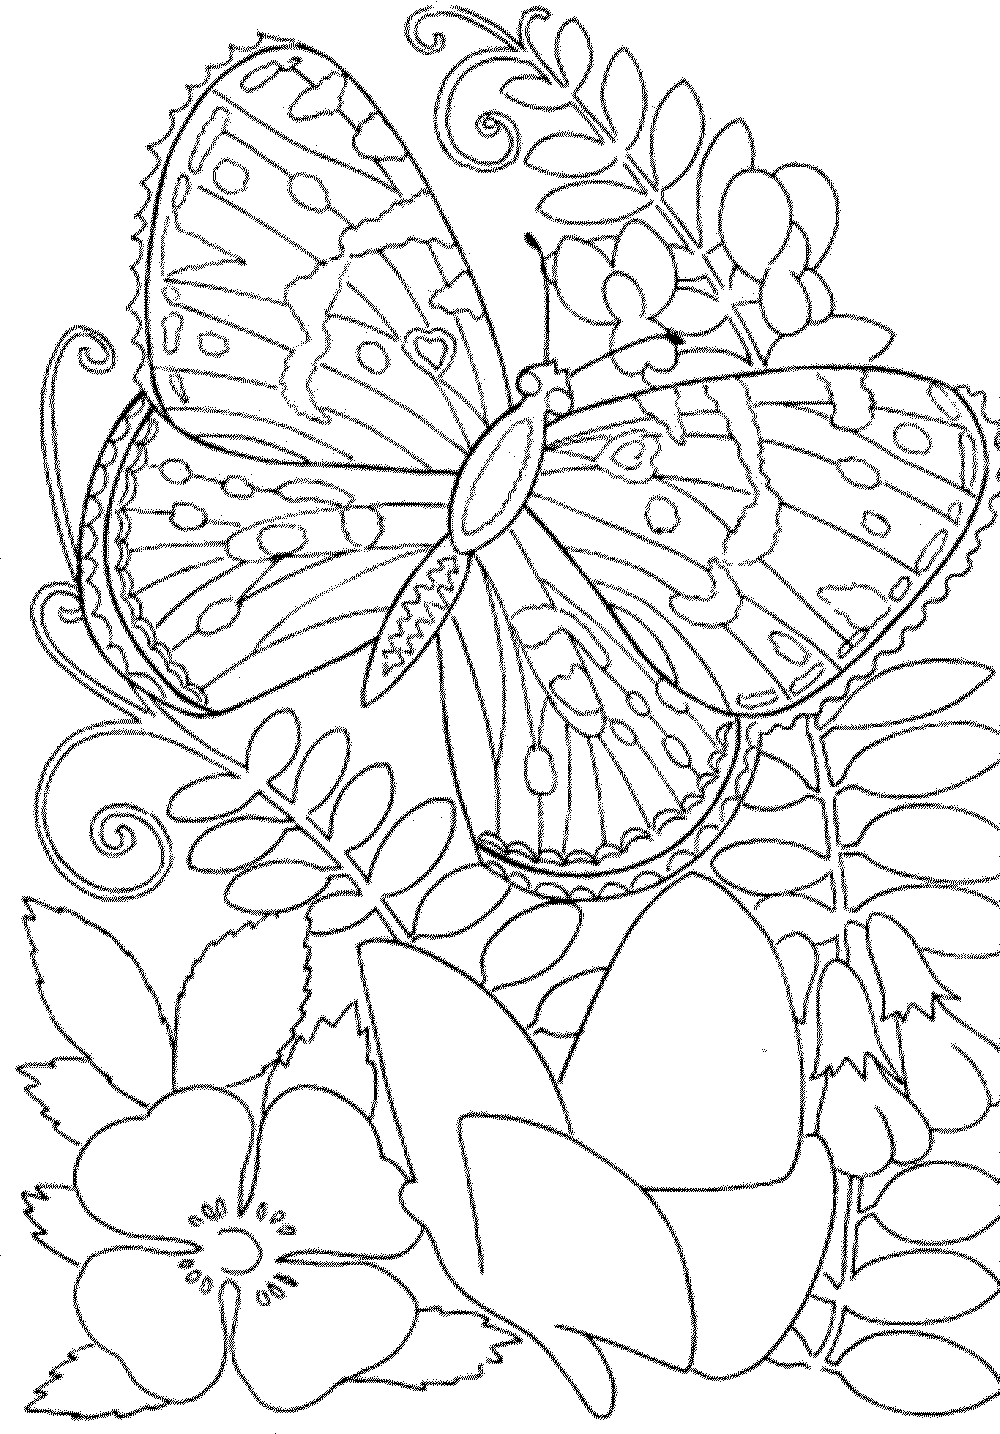 [Coloring Pages] detailed coloring pages for adults